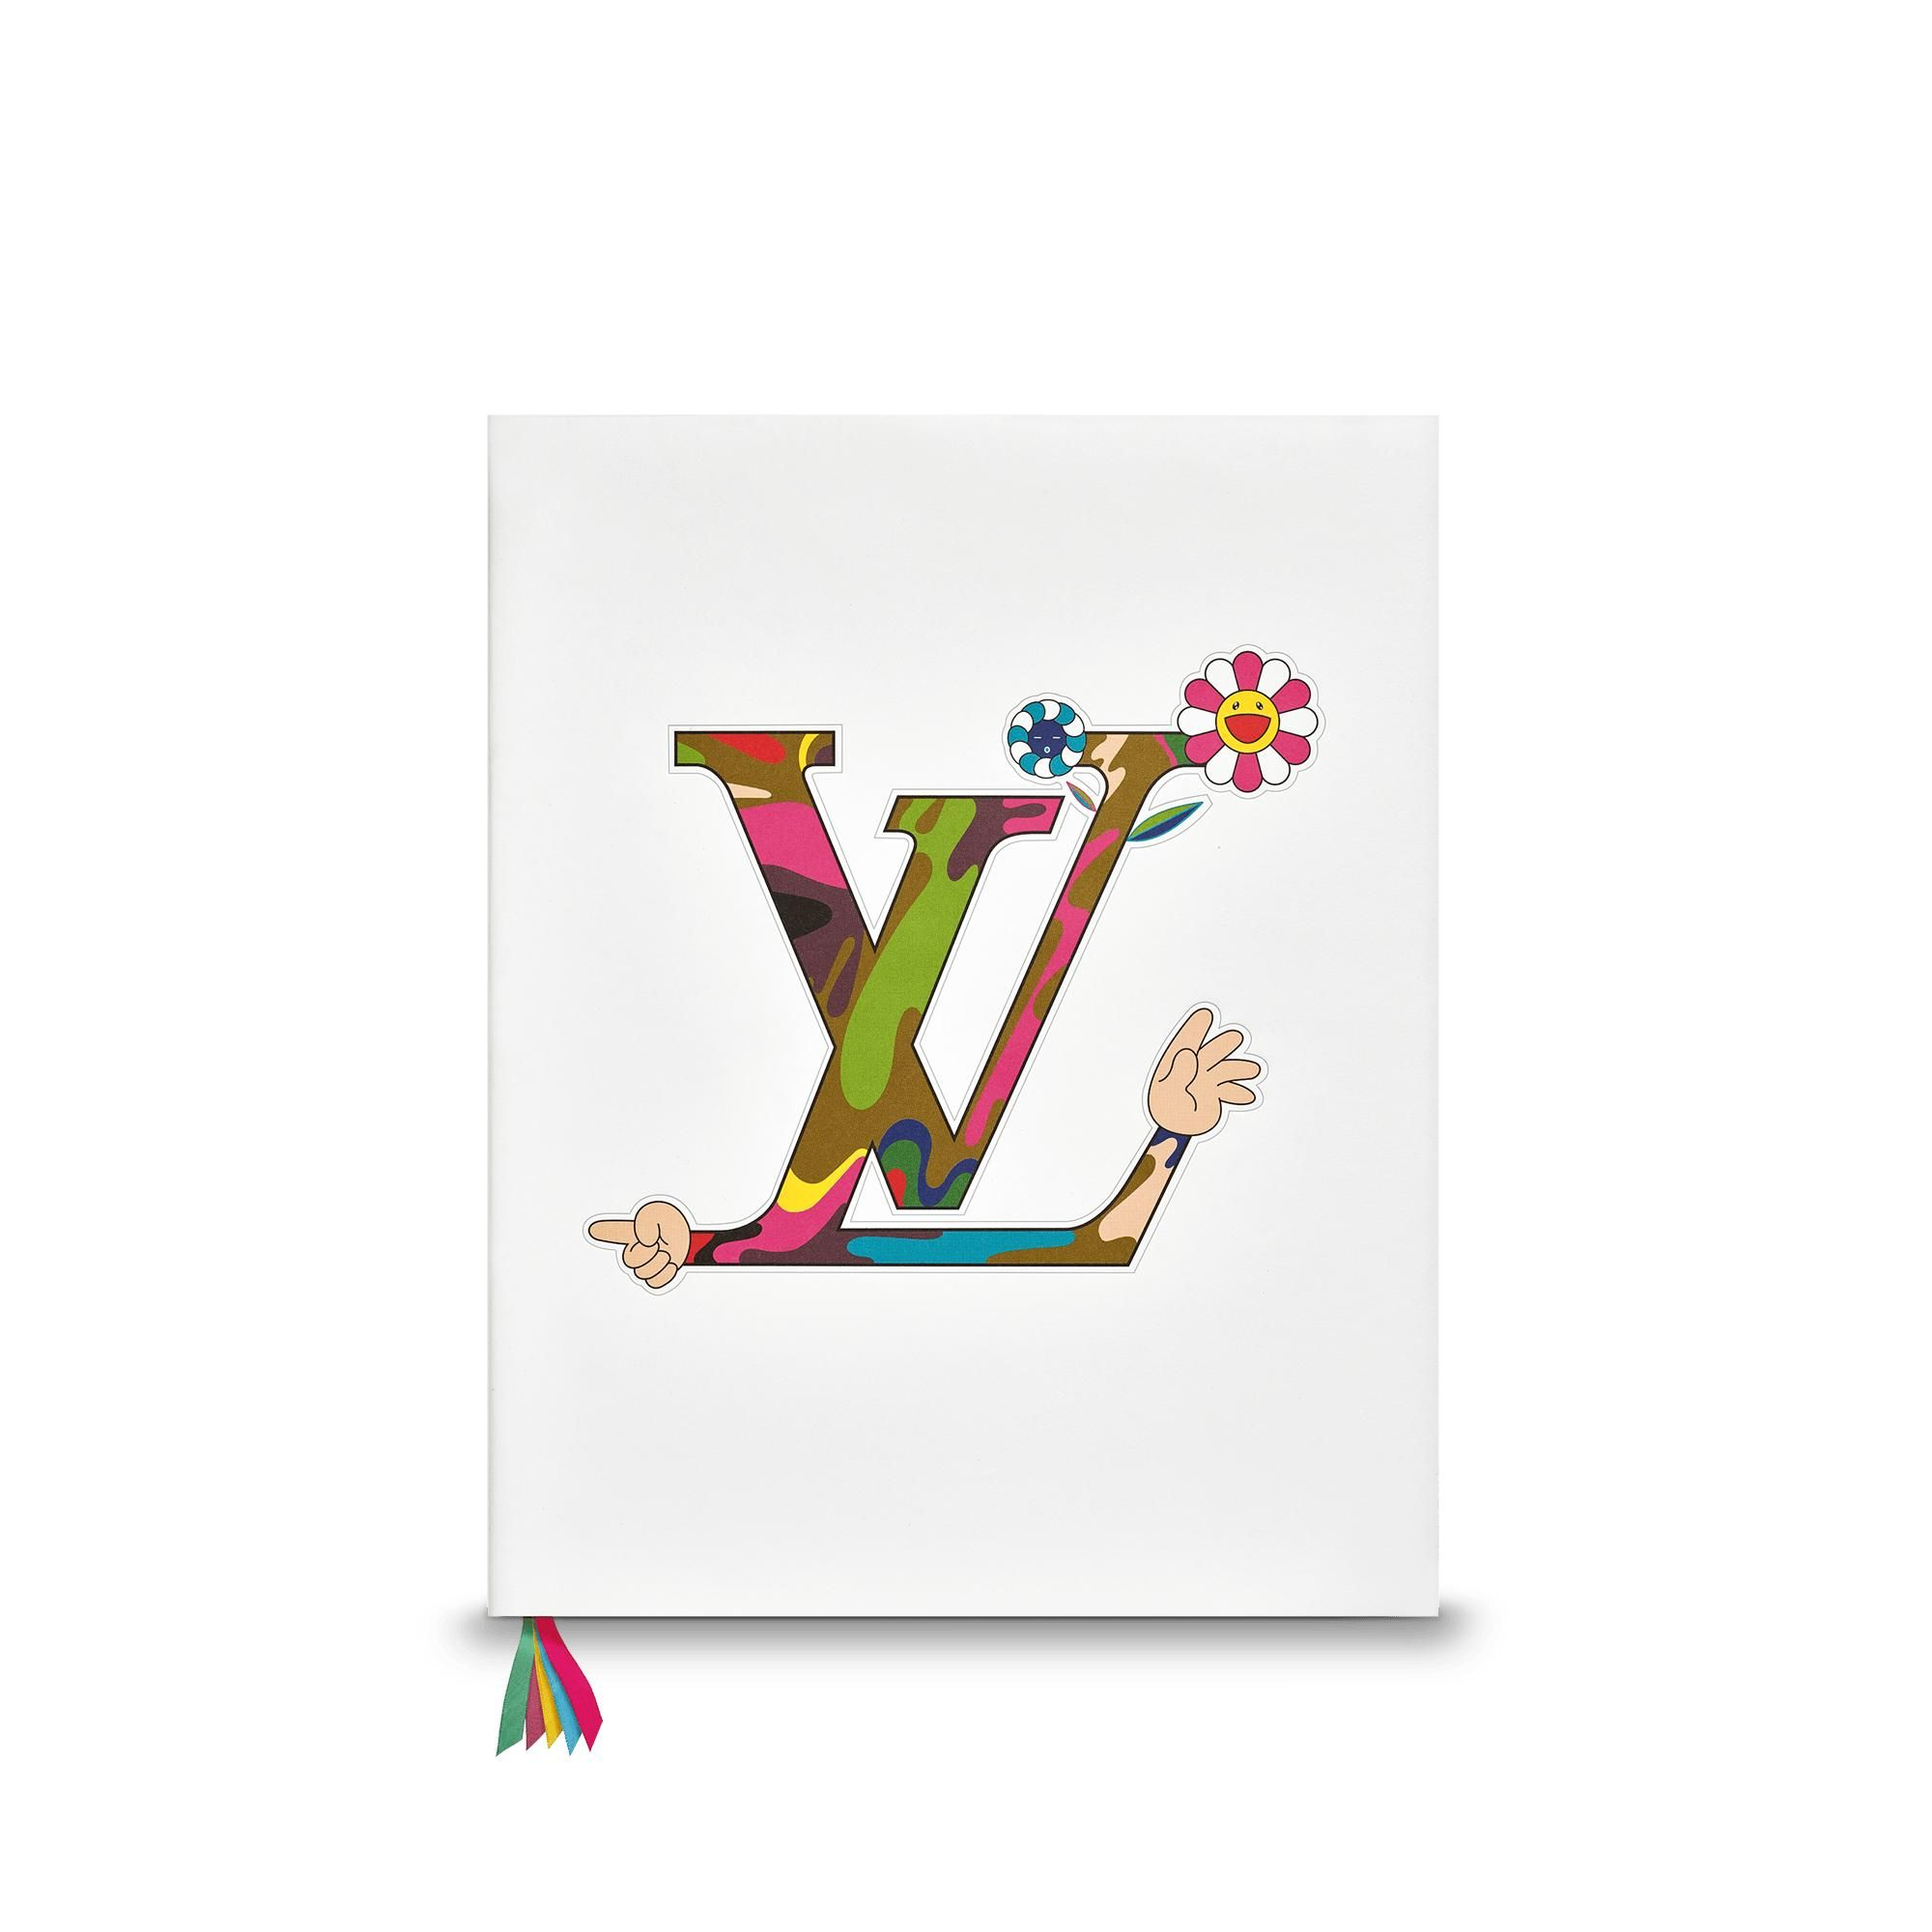 Book Lv And Art Nv English Version Accessories Louis Vuitton Louis Vuitton Book Louis Vuitton Collection Louis Vuitton Fragrance